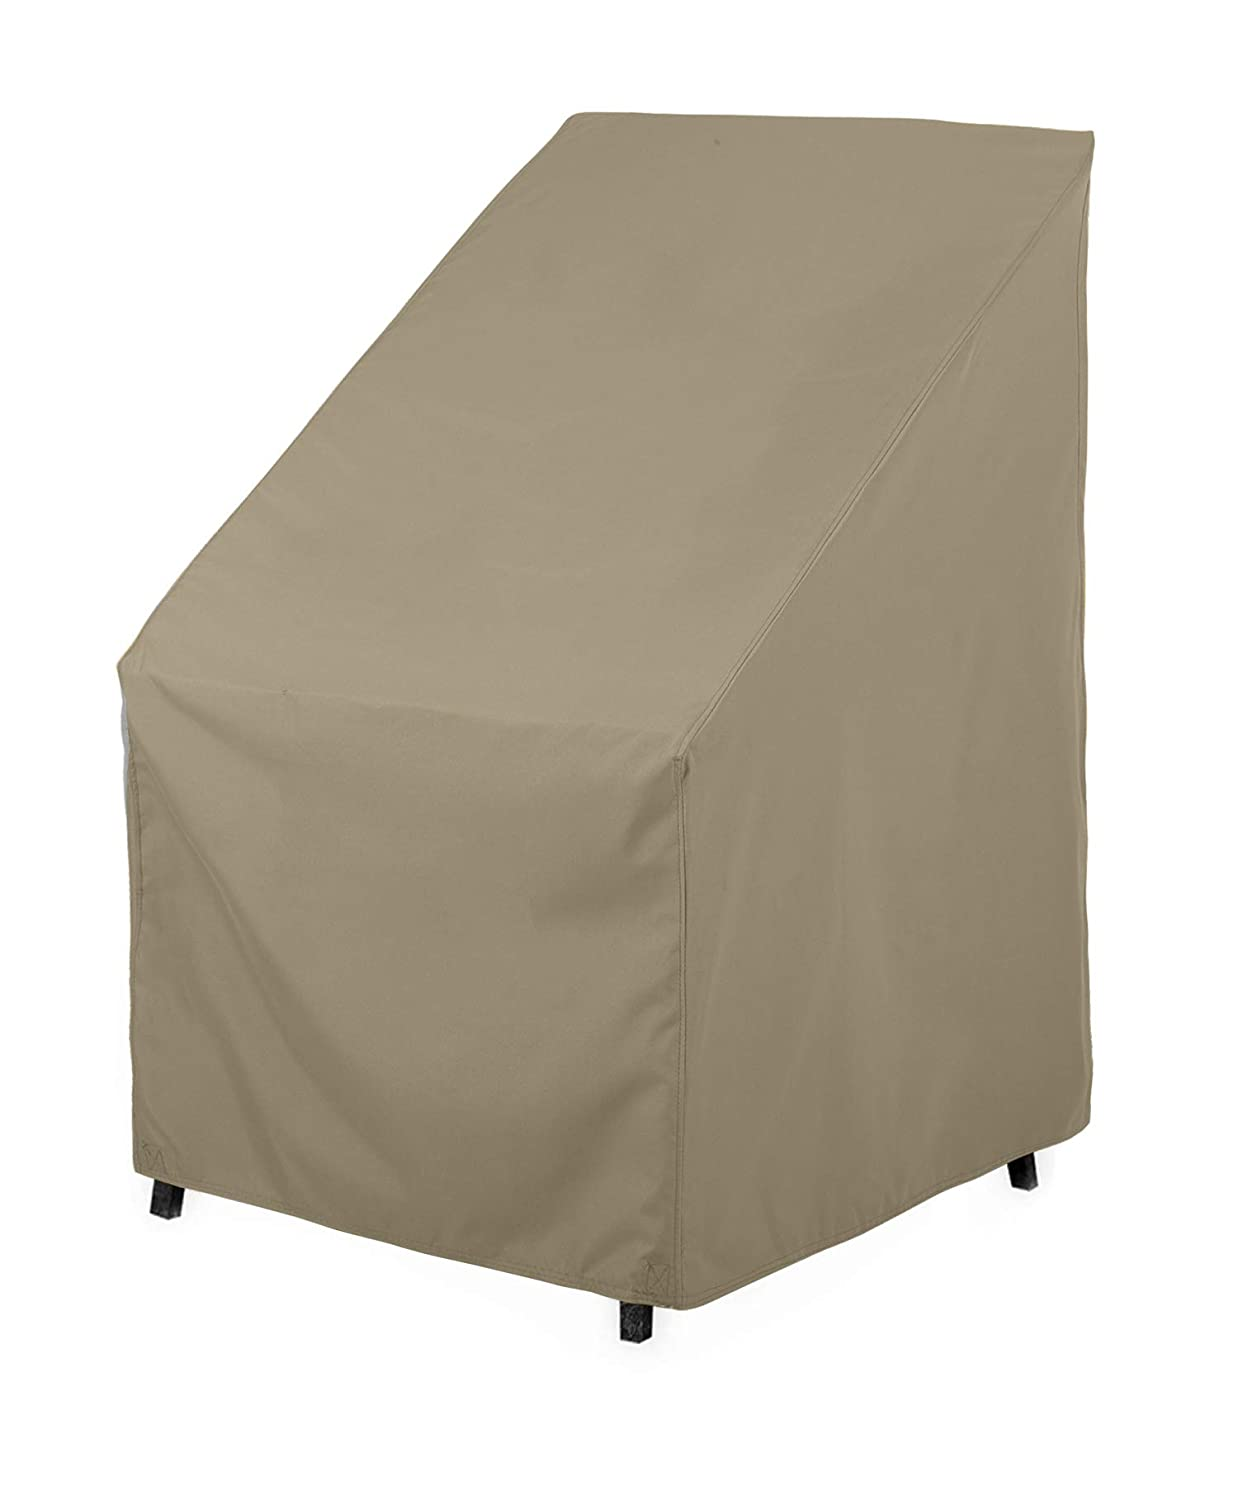 """SunPatio Outdoor High Back Chair Cover, Water Resistant, Lightweight, Helpful Air Vents, All Weather Protection, 27"""" W x 30"""" D x 42"""" H, Neutral Taupe"""